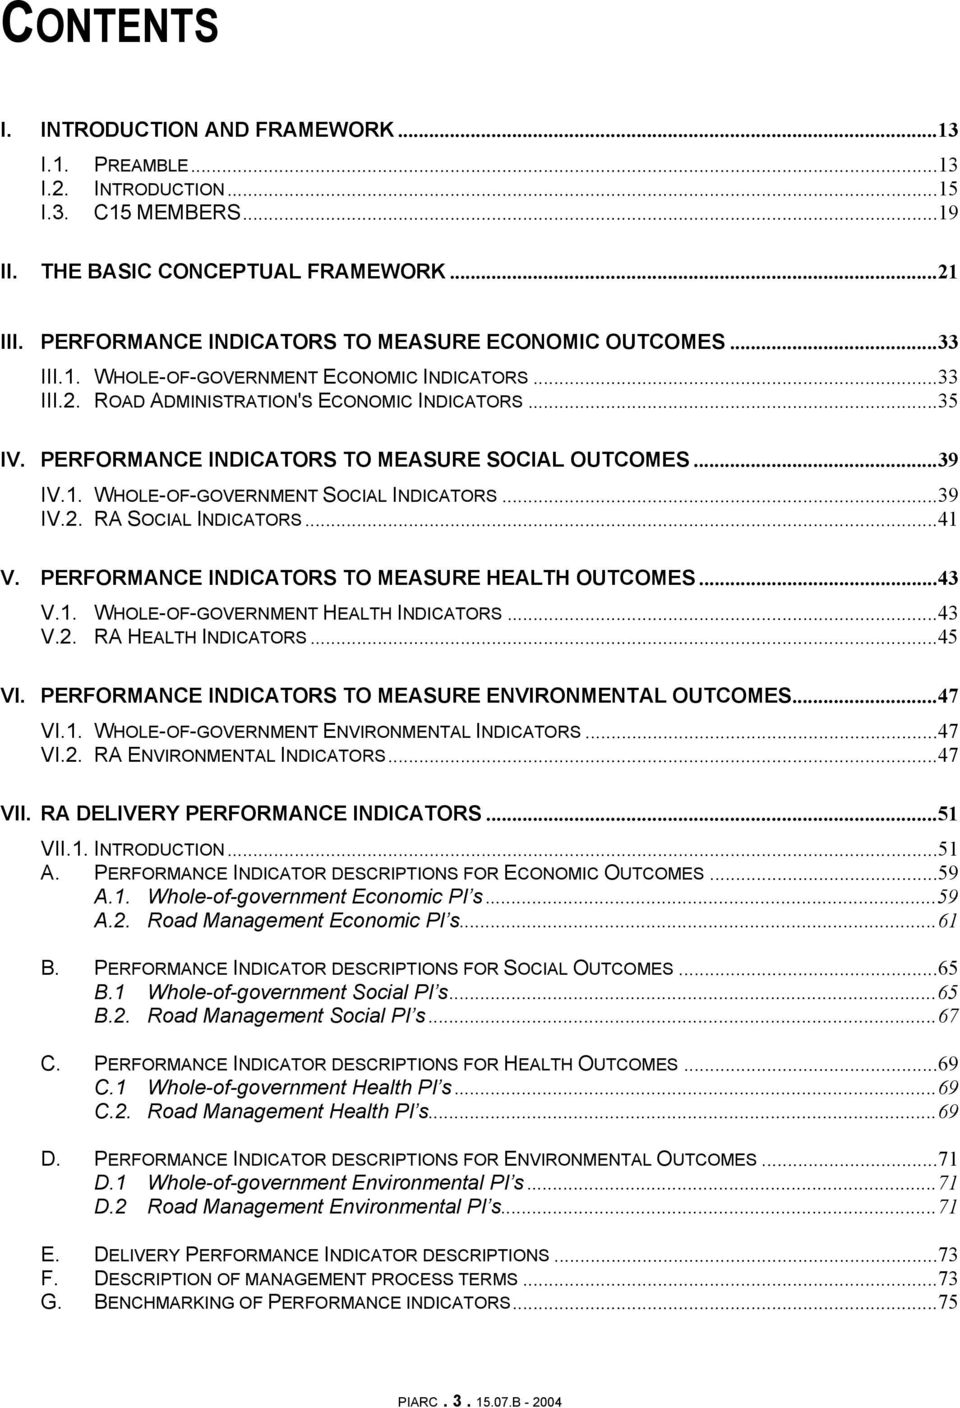 PERFORMANCE INDICATORS TO MEASURE SOCIAL OUTCOMES...39 IV.1. WHOLE-OF-GOVERNMENT SOCIAL INDICATORS...39 IV.2. RA SOCIAL INDICATORS...41 V. PERFORMANCE INDICATORS TO MEASURE HEALTH OUTCOMES...43 V.1. WHOLE-OF-GOVERNMENT HEALTH INDICATORS.